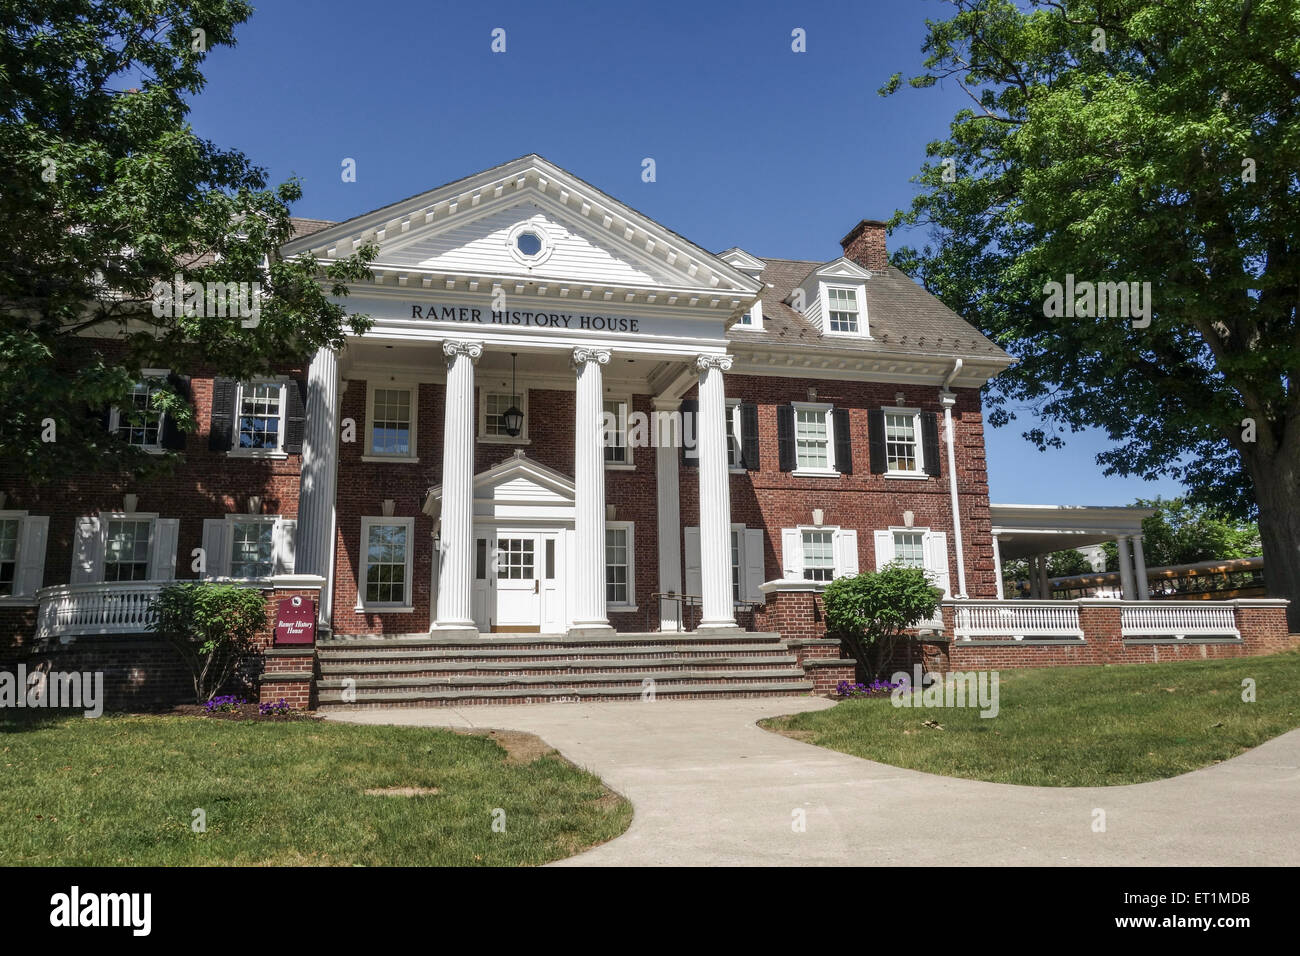 Ramer history house at campus, Lafayette College, private liberal arts college, Easton, Pennsylvania, USA. - Stock Image